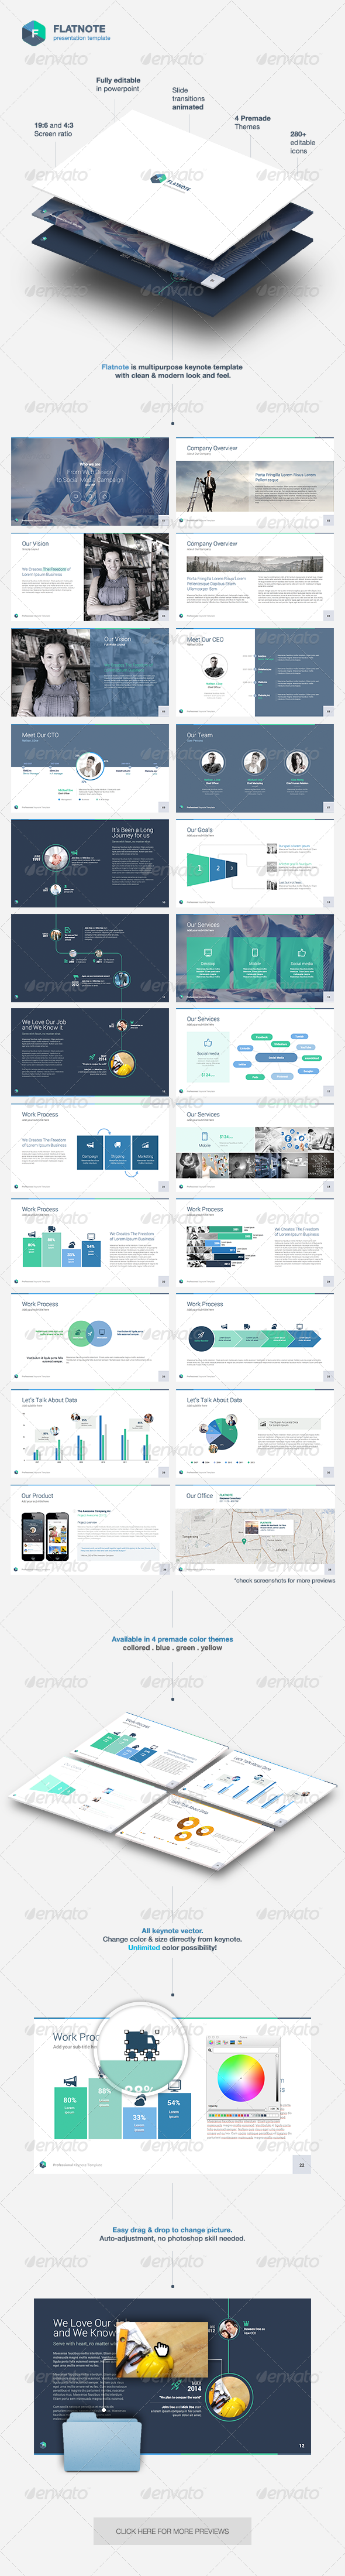 GraphicRiver Flatnote Powerpoint Template 8206979